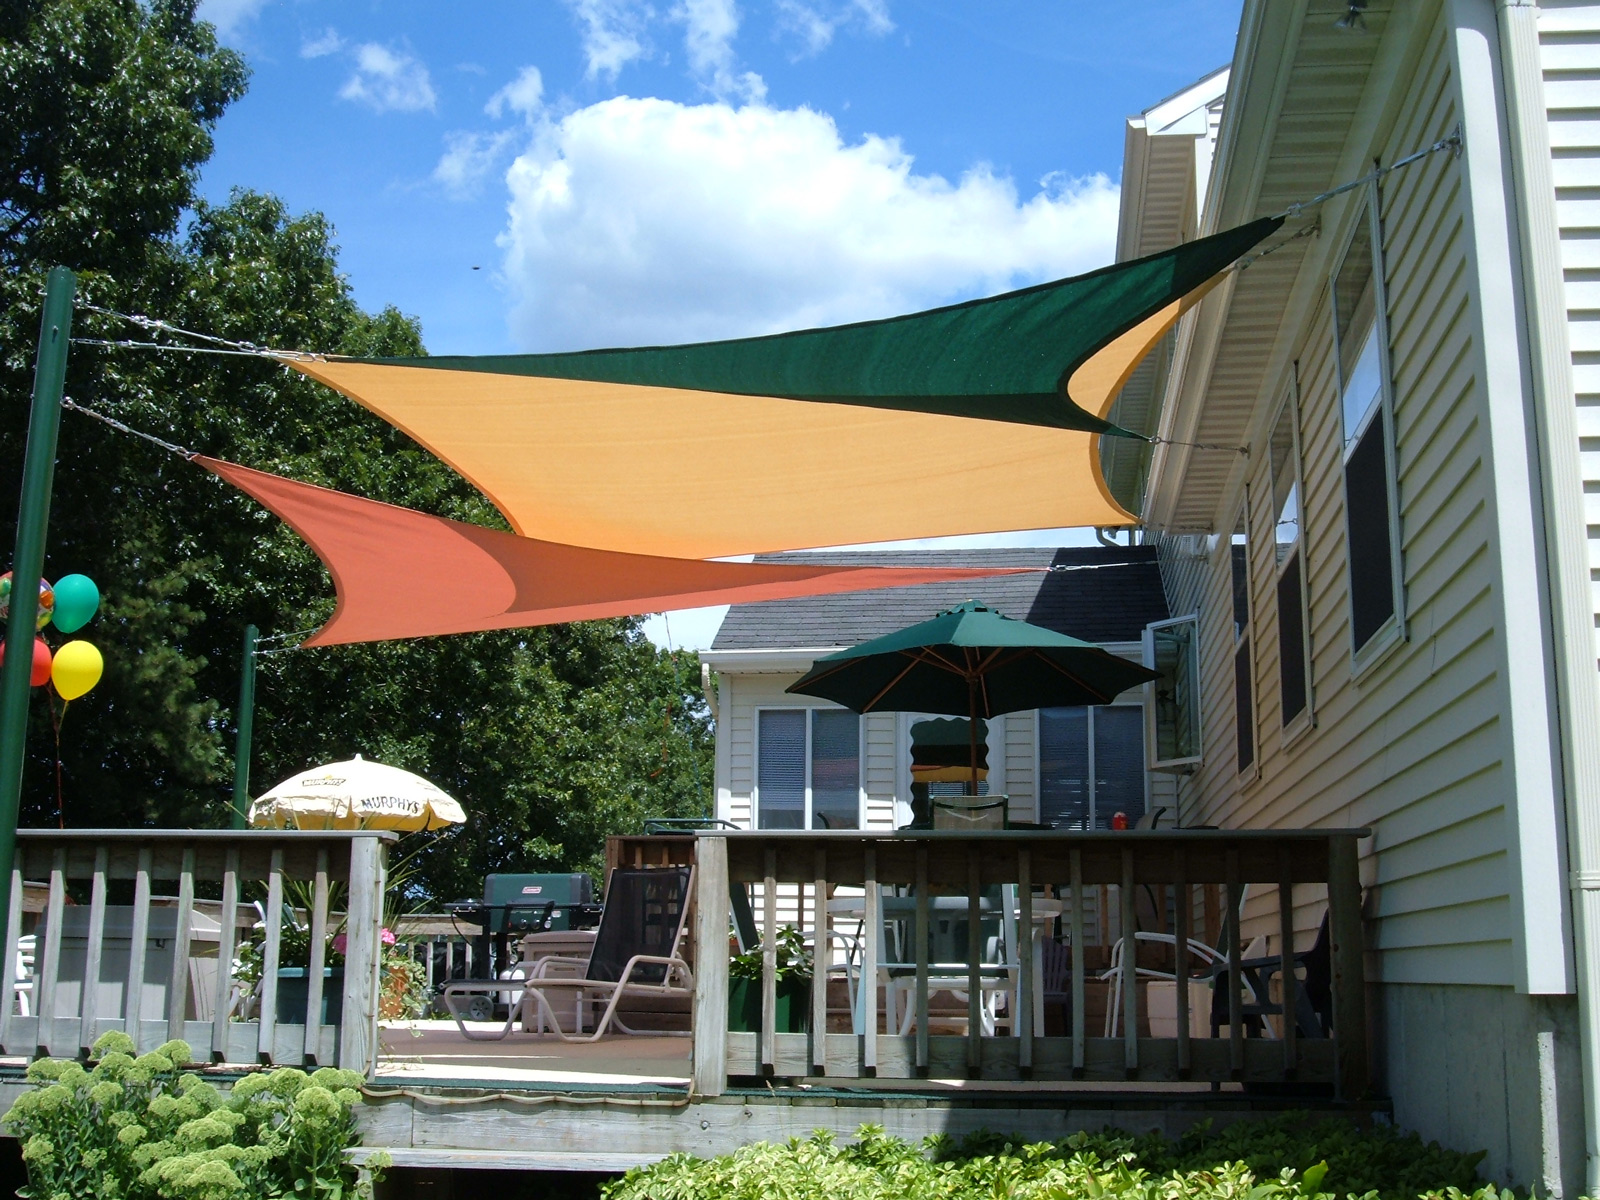 patio and awning shade custom covers retractable awnings